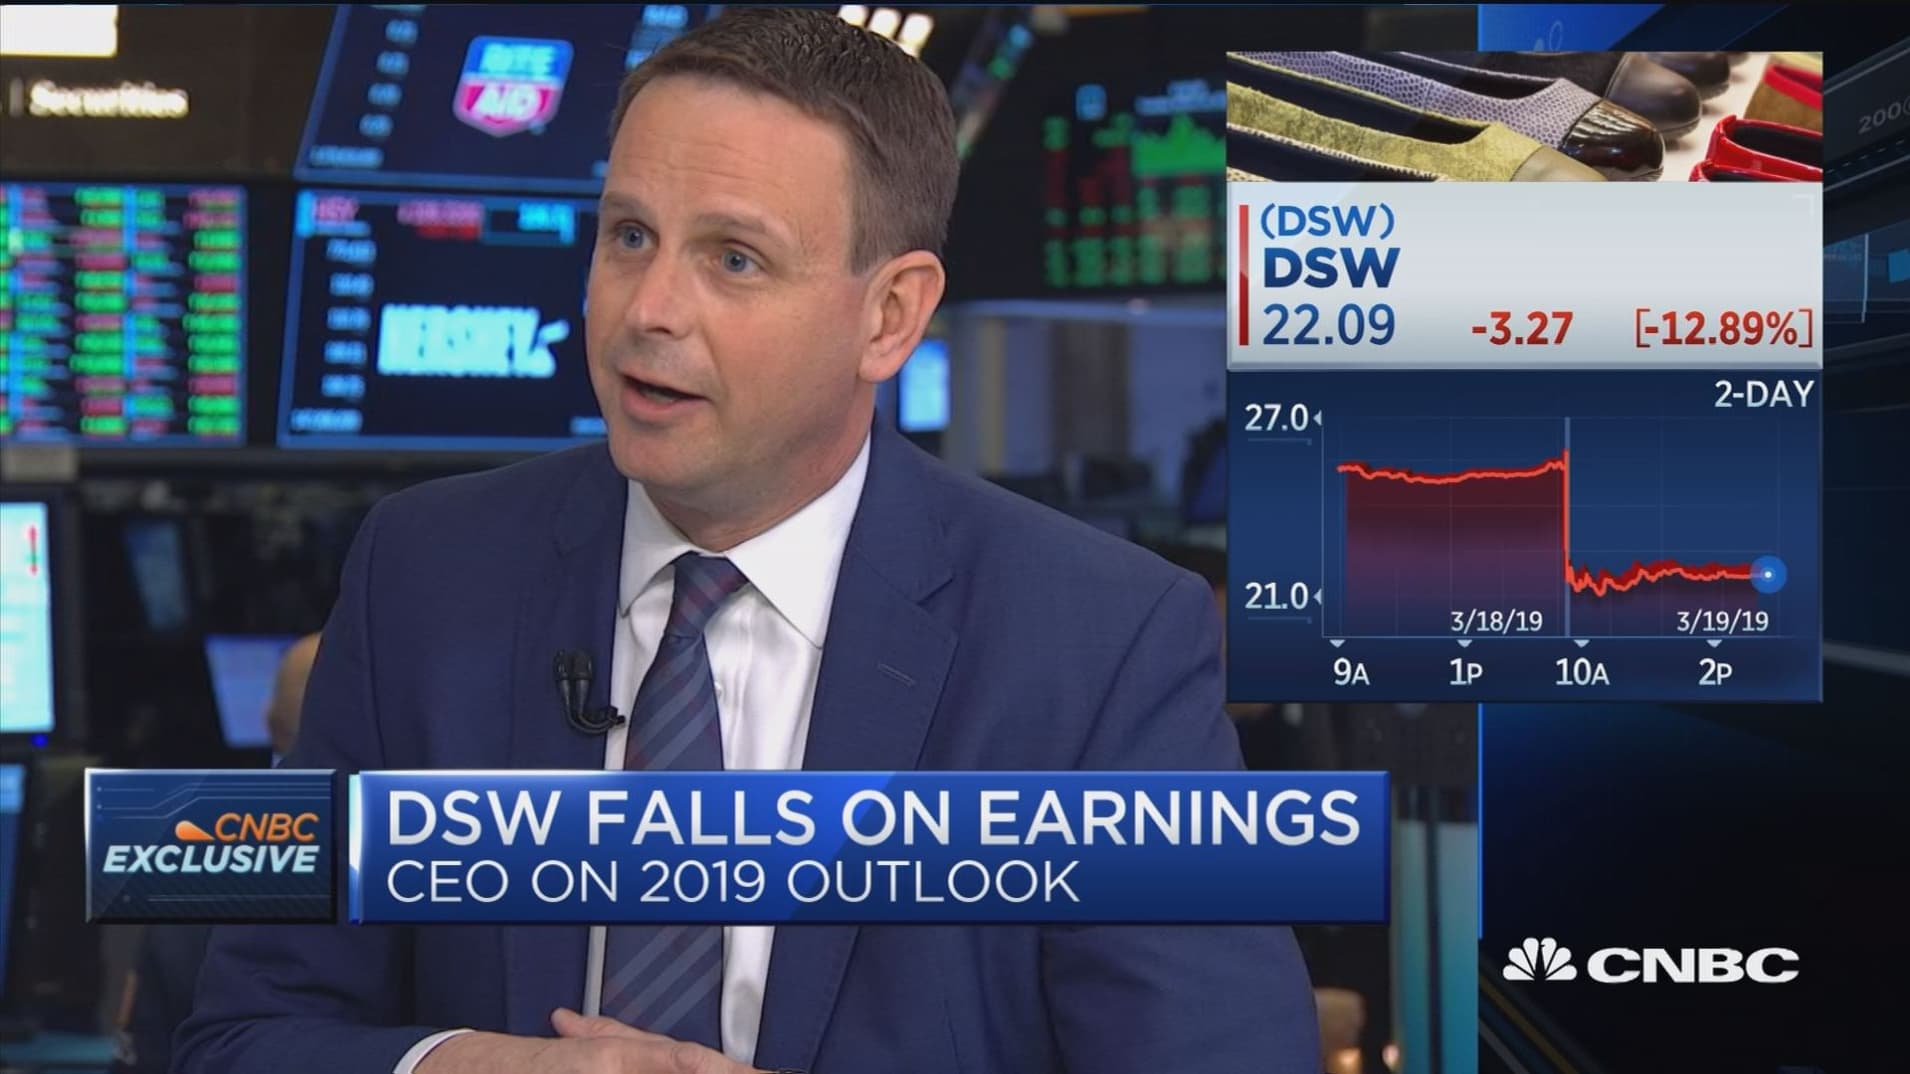 DSW CEO Roger Rawlins on 2019 outlook, corporate name change